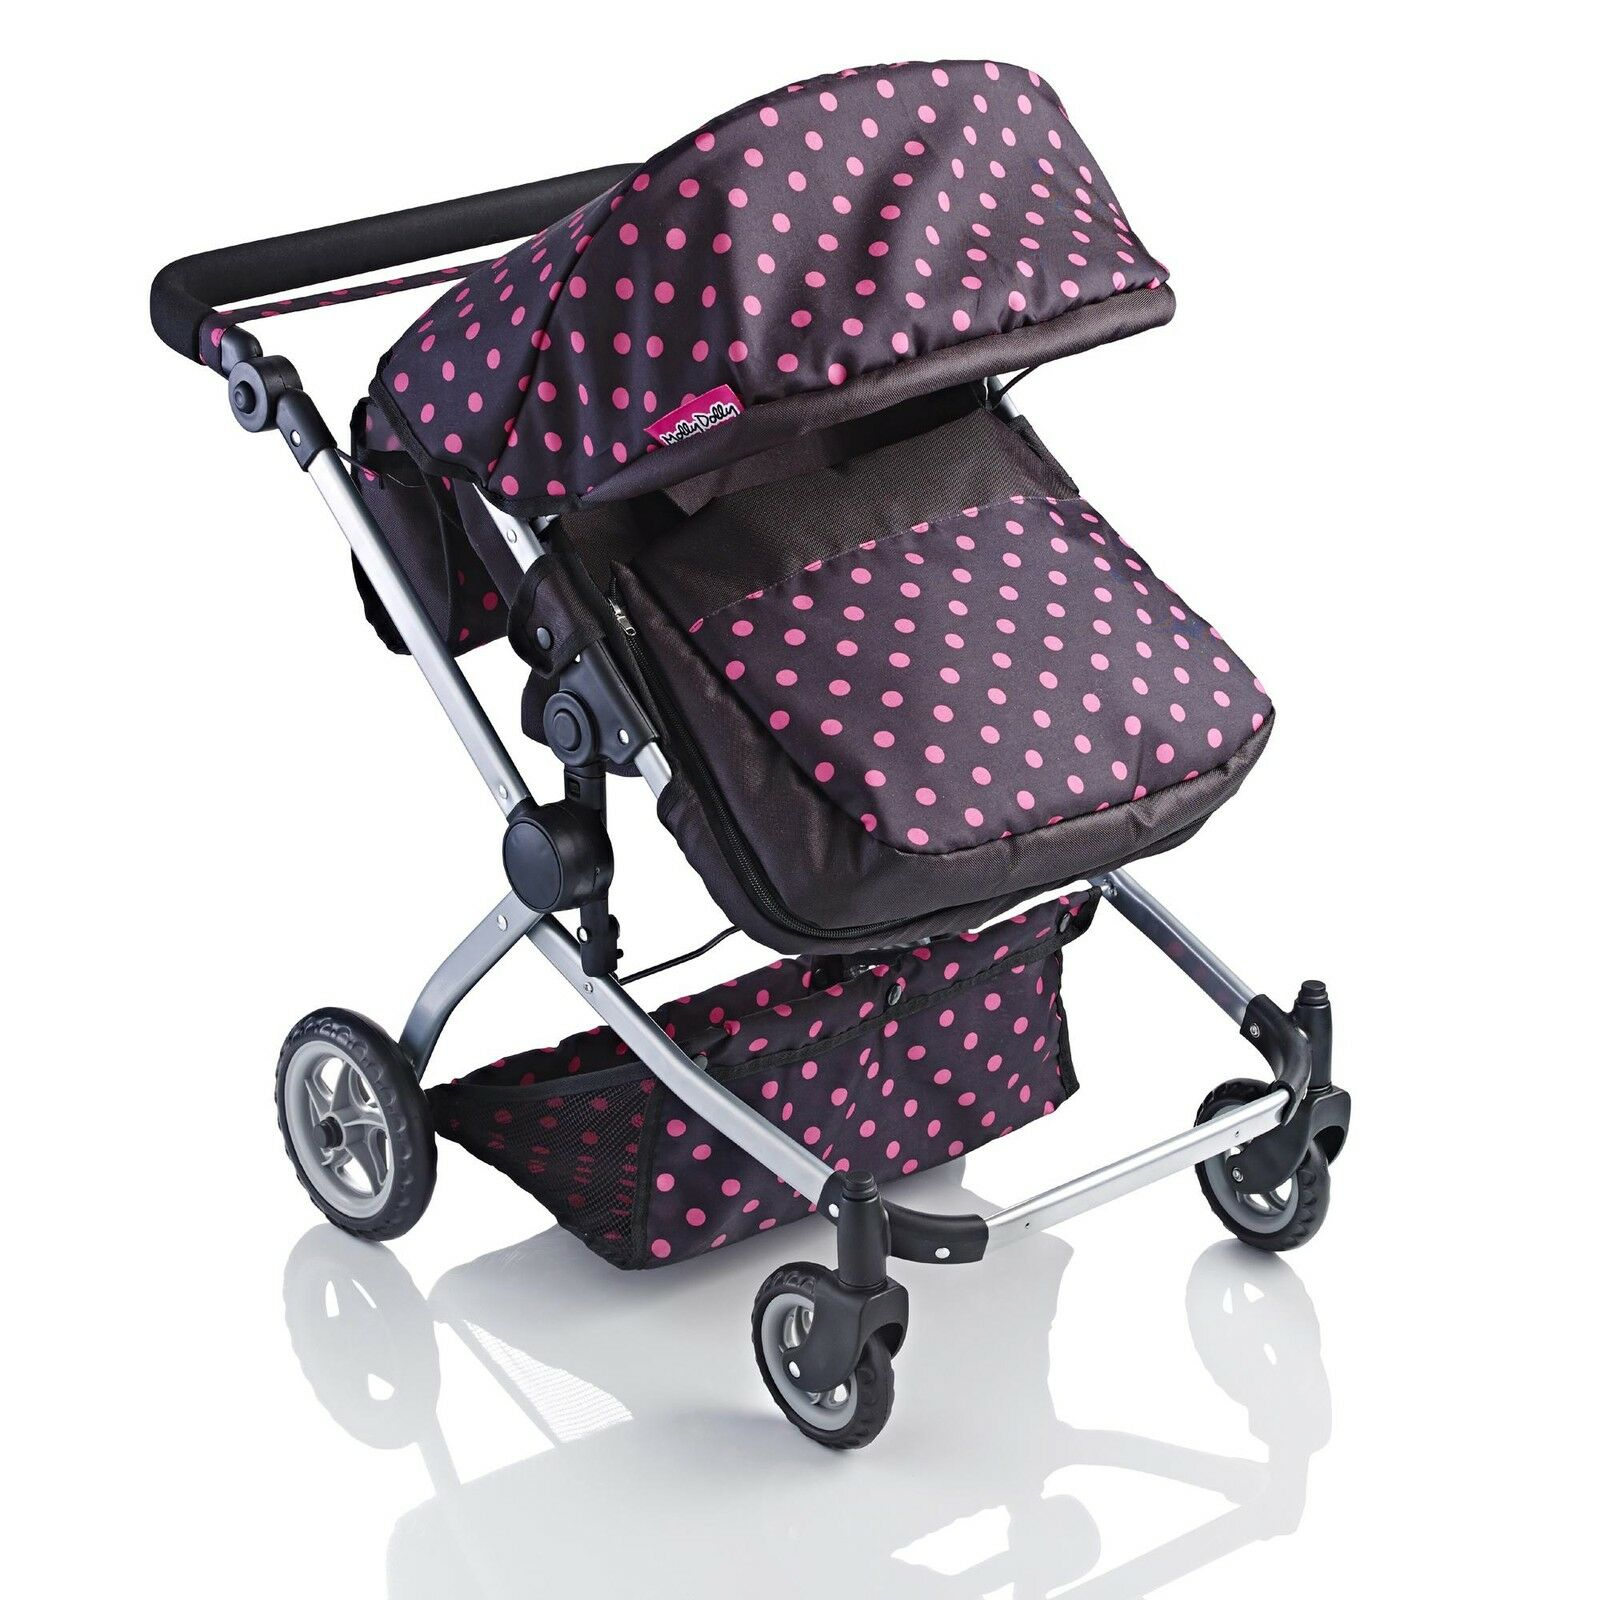 Molly Dolly 2 in 1 Twin Deluxe Babyboo Doll Stroller/Pram Buggy Girls Junior Toy 3